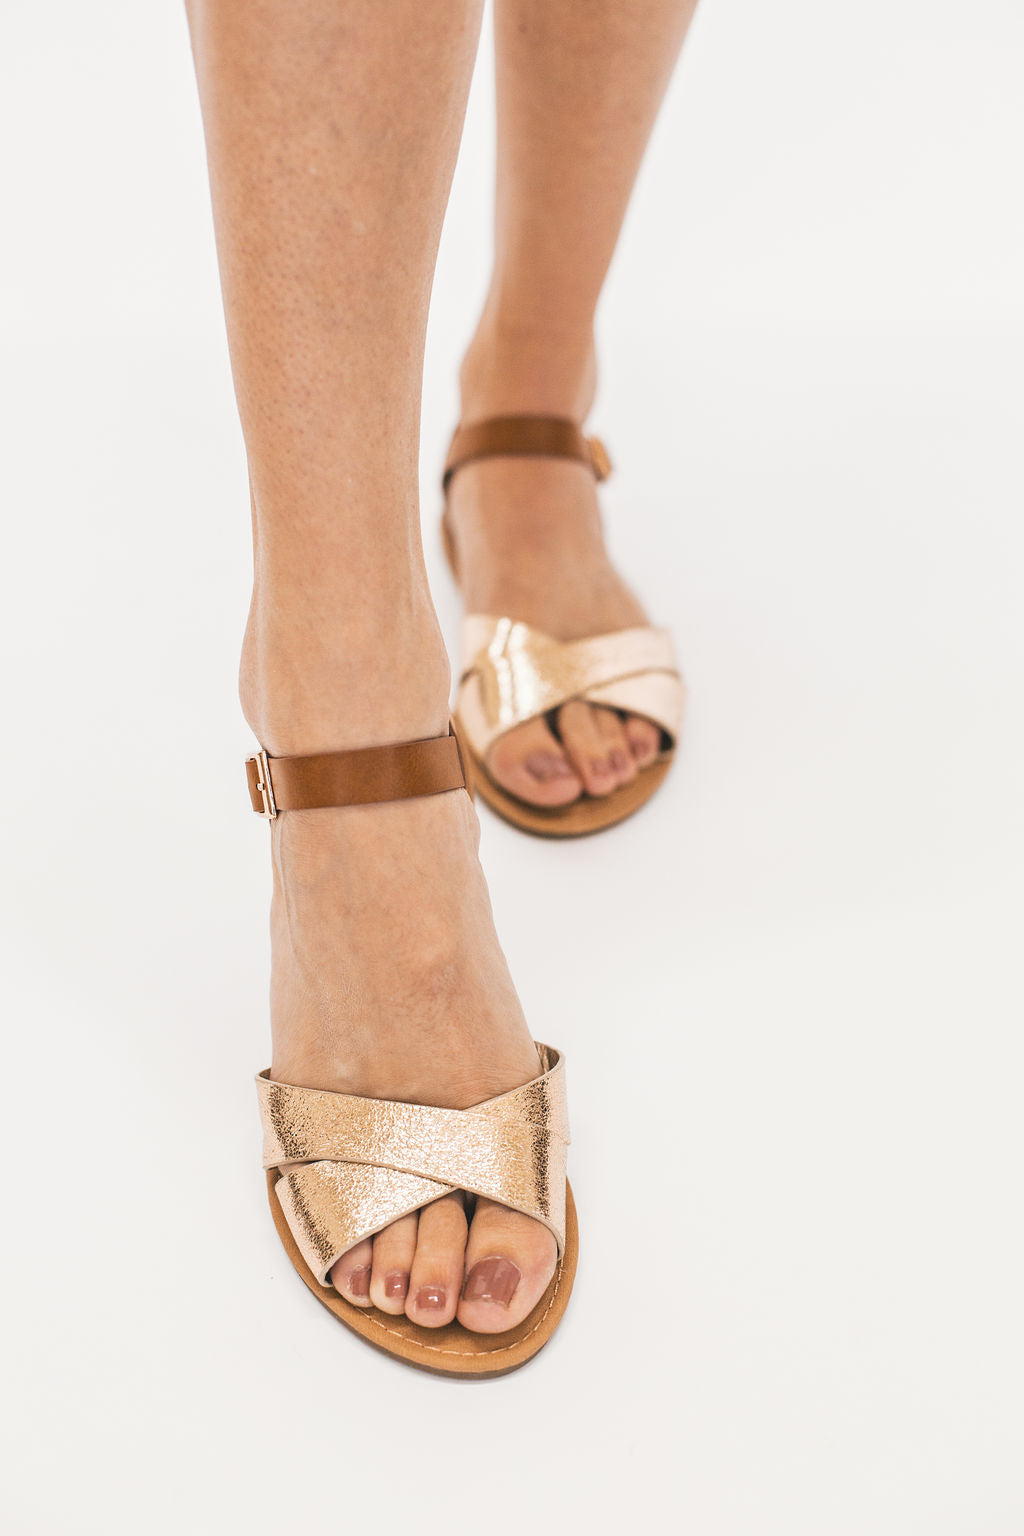 THE SHORELINE SANDAL IN GOLD